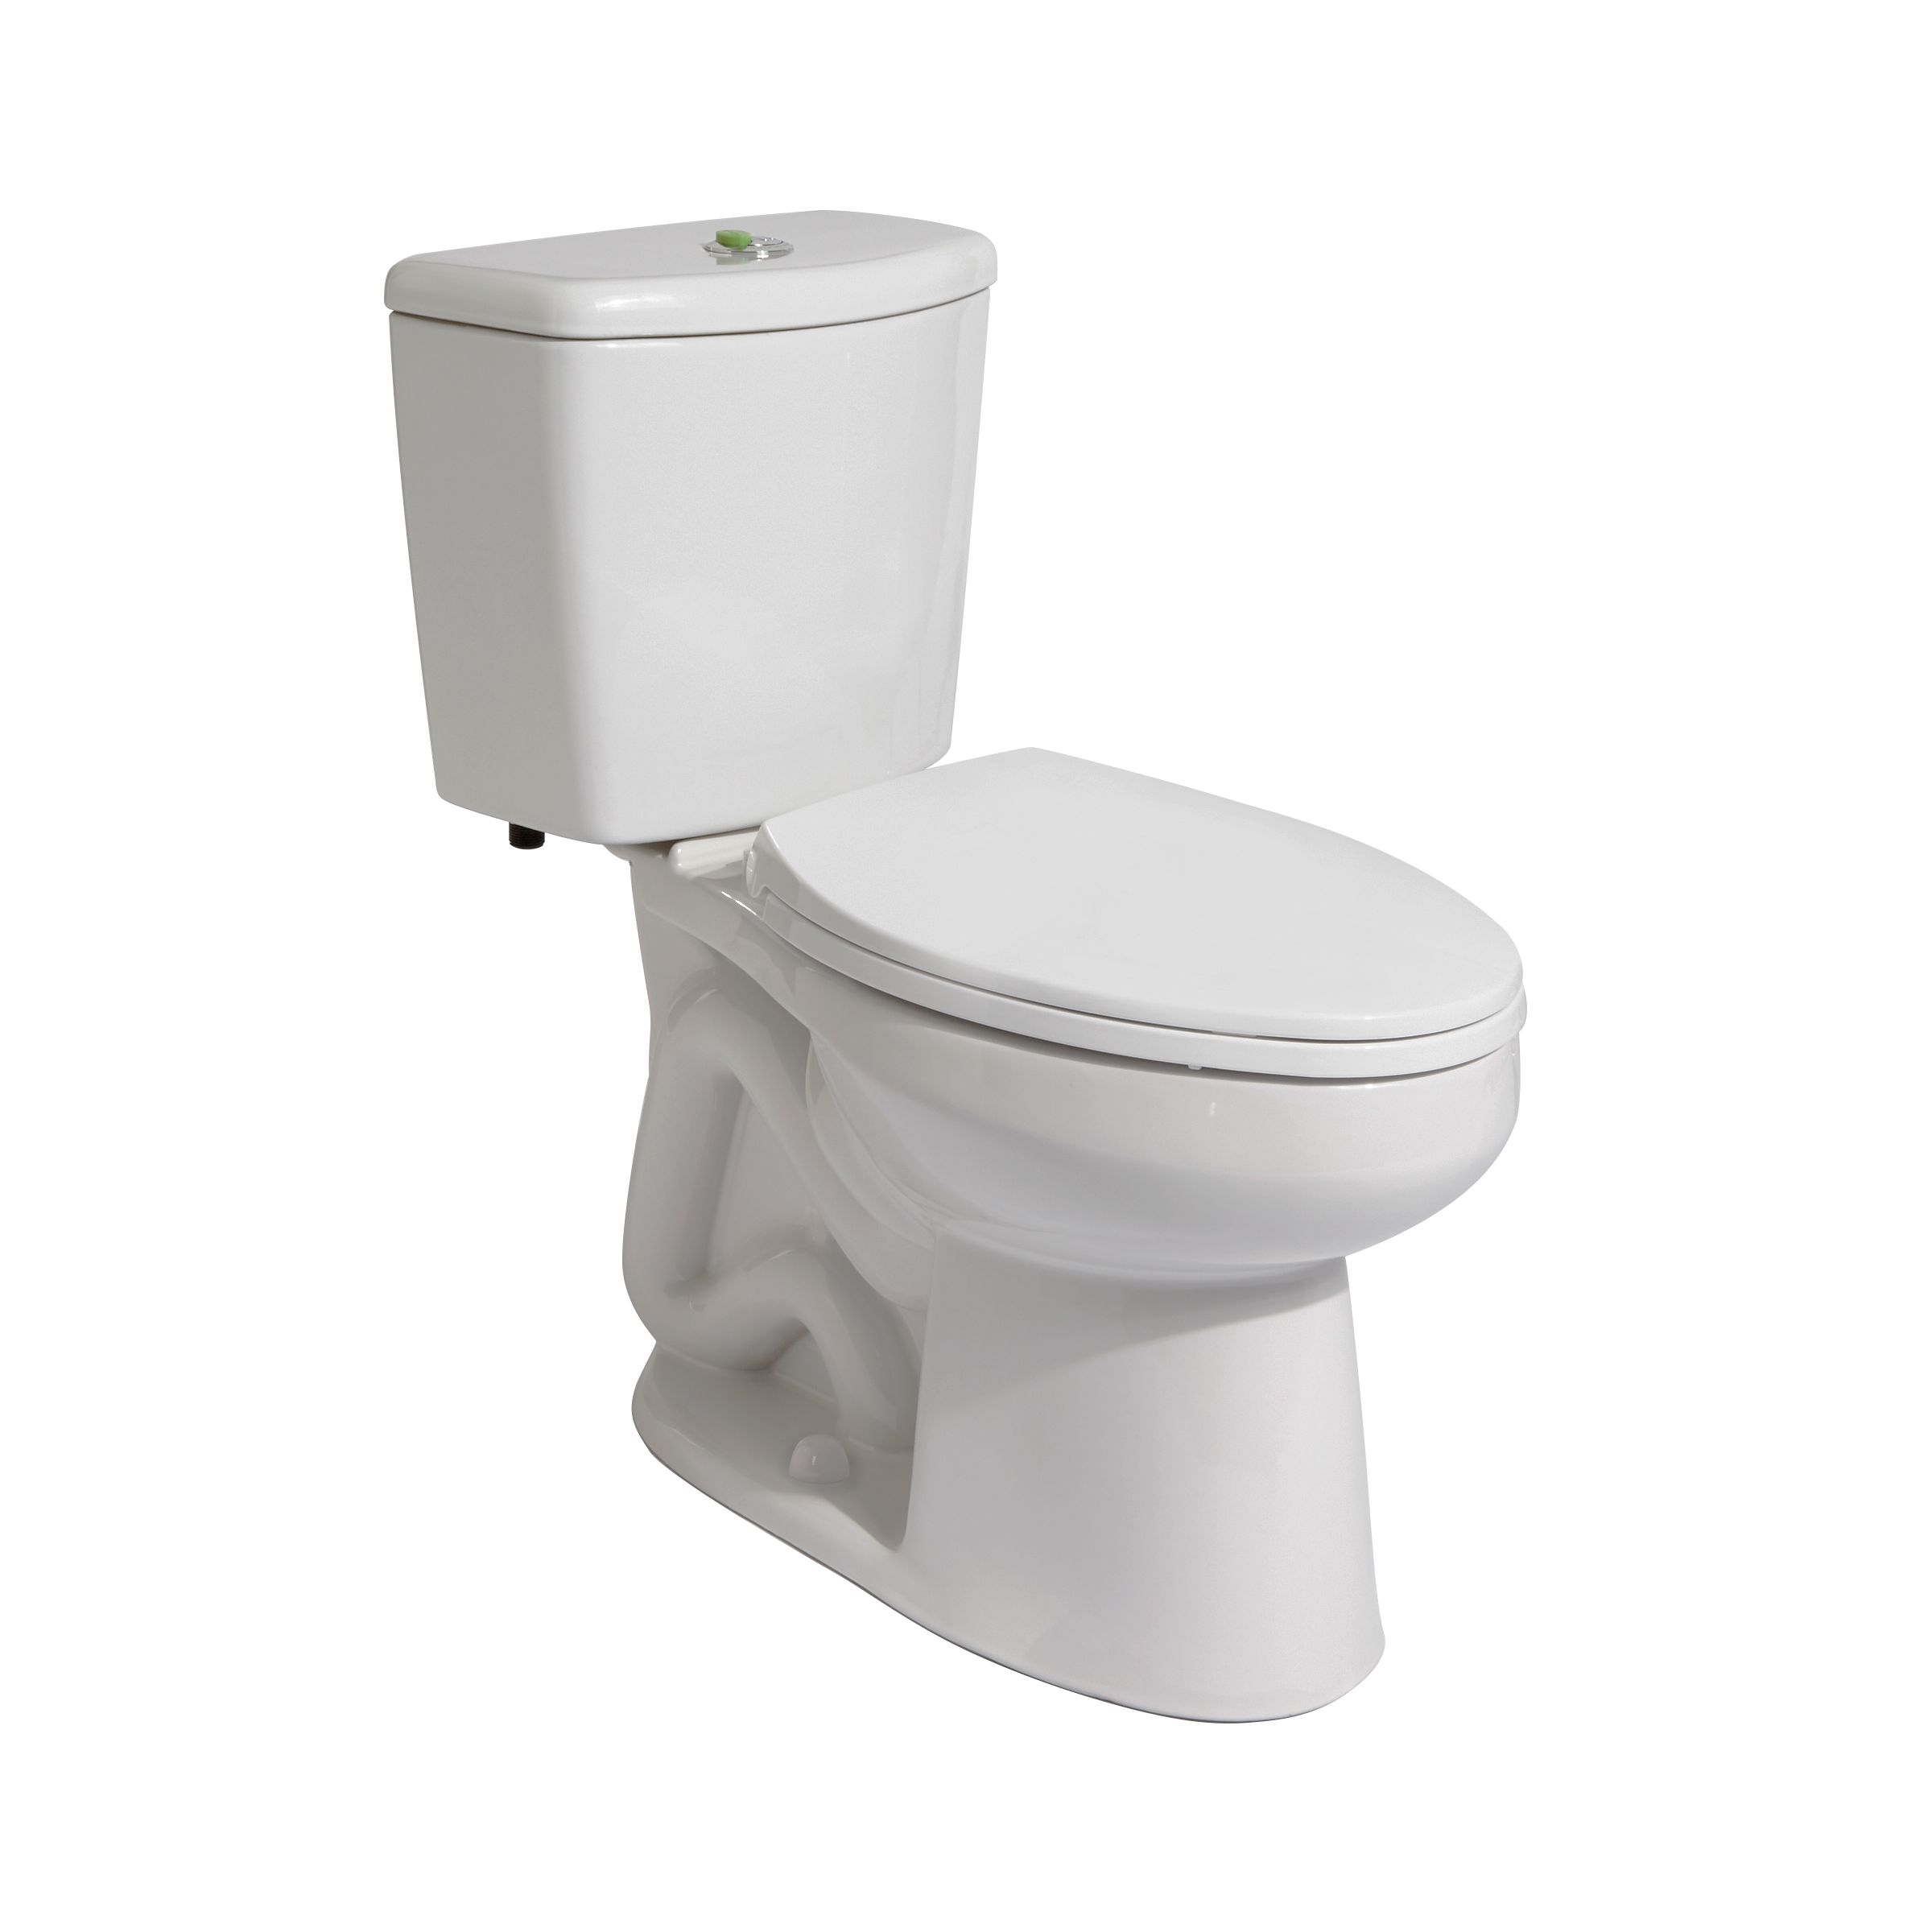 Niagara Conservation to Debut New Nano Toilet at KBIS 2018 | Builder ...